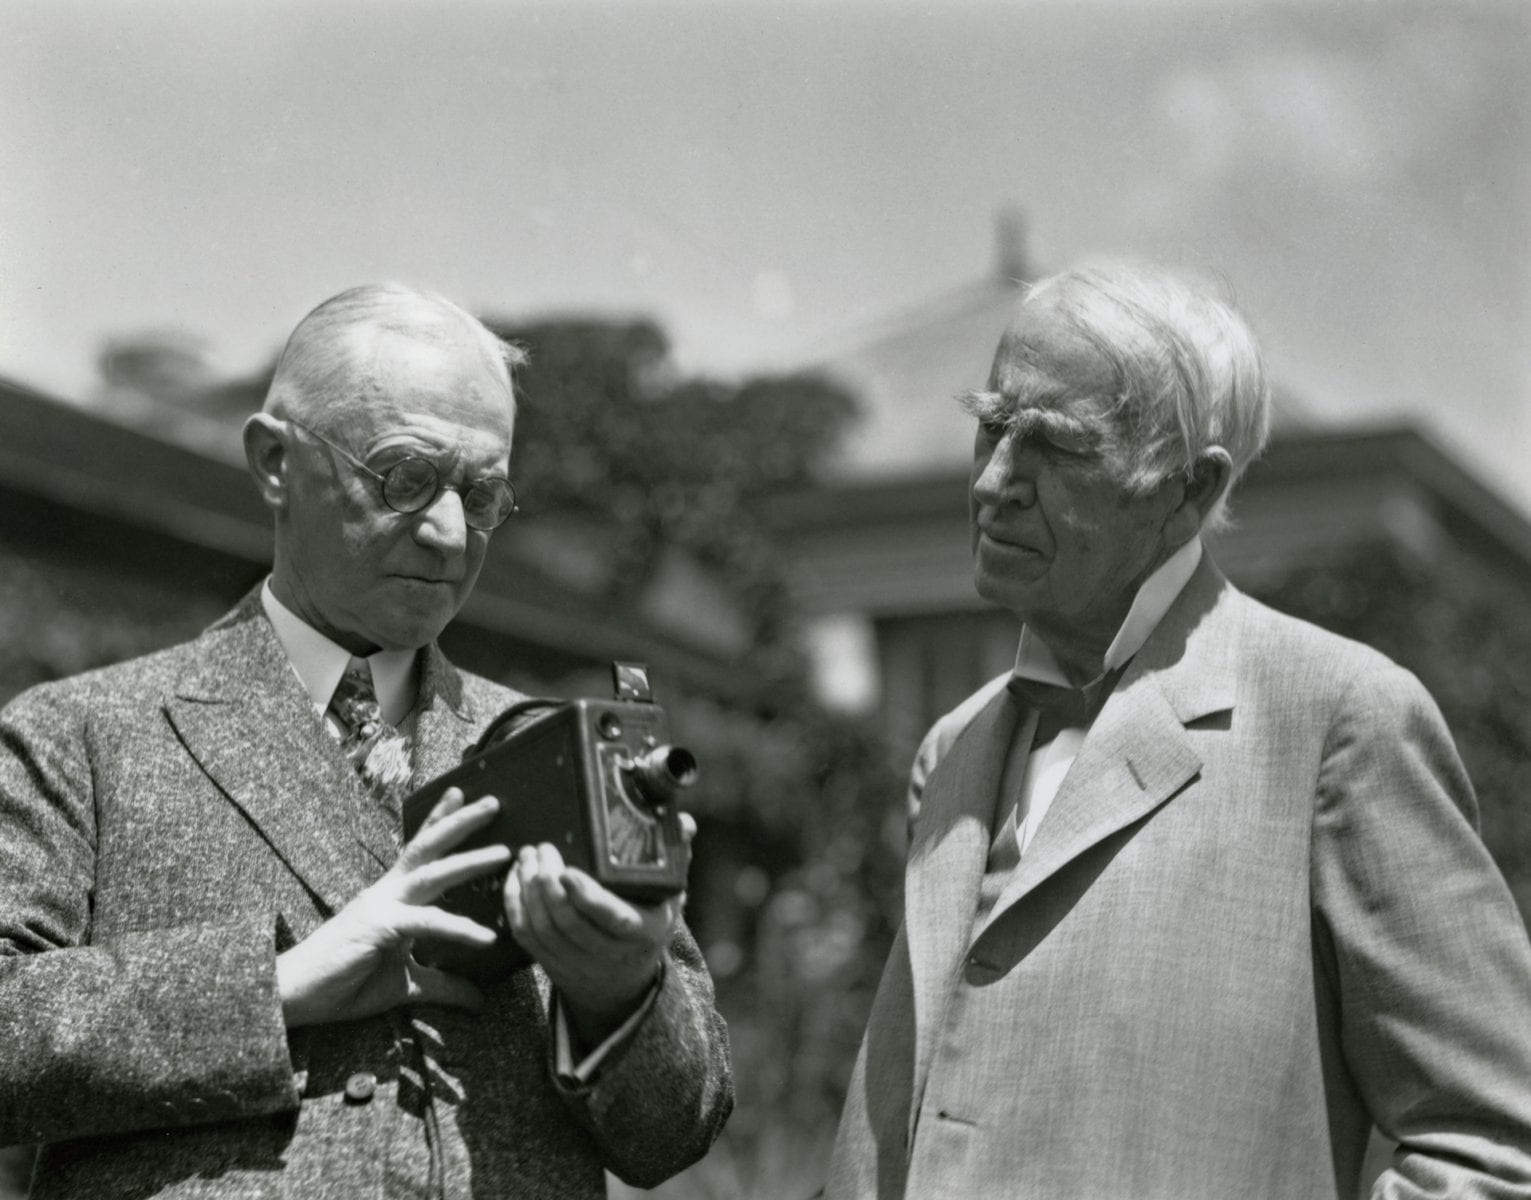 George Eastman and Thomas Edison at Eastman's house in Rochester, New York, 1928